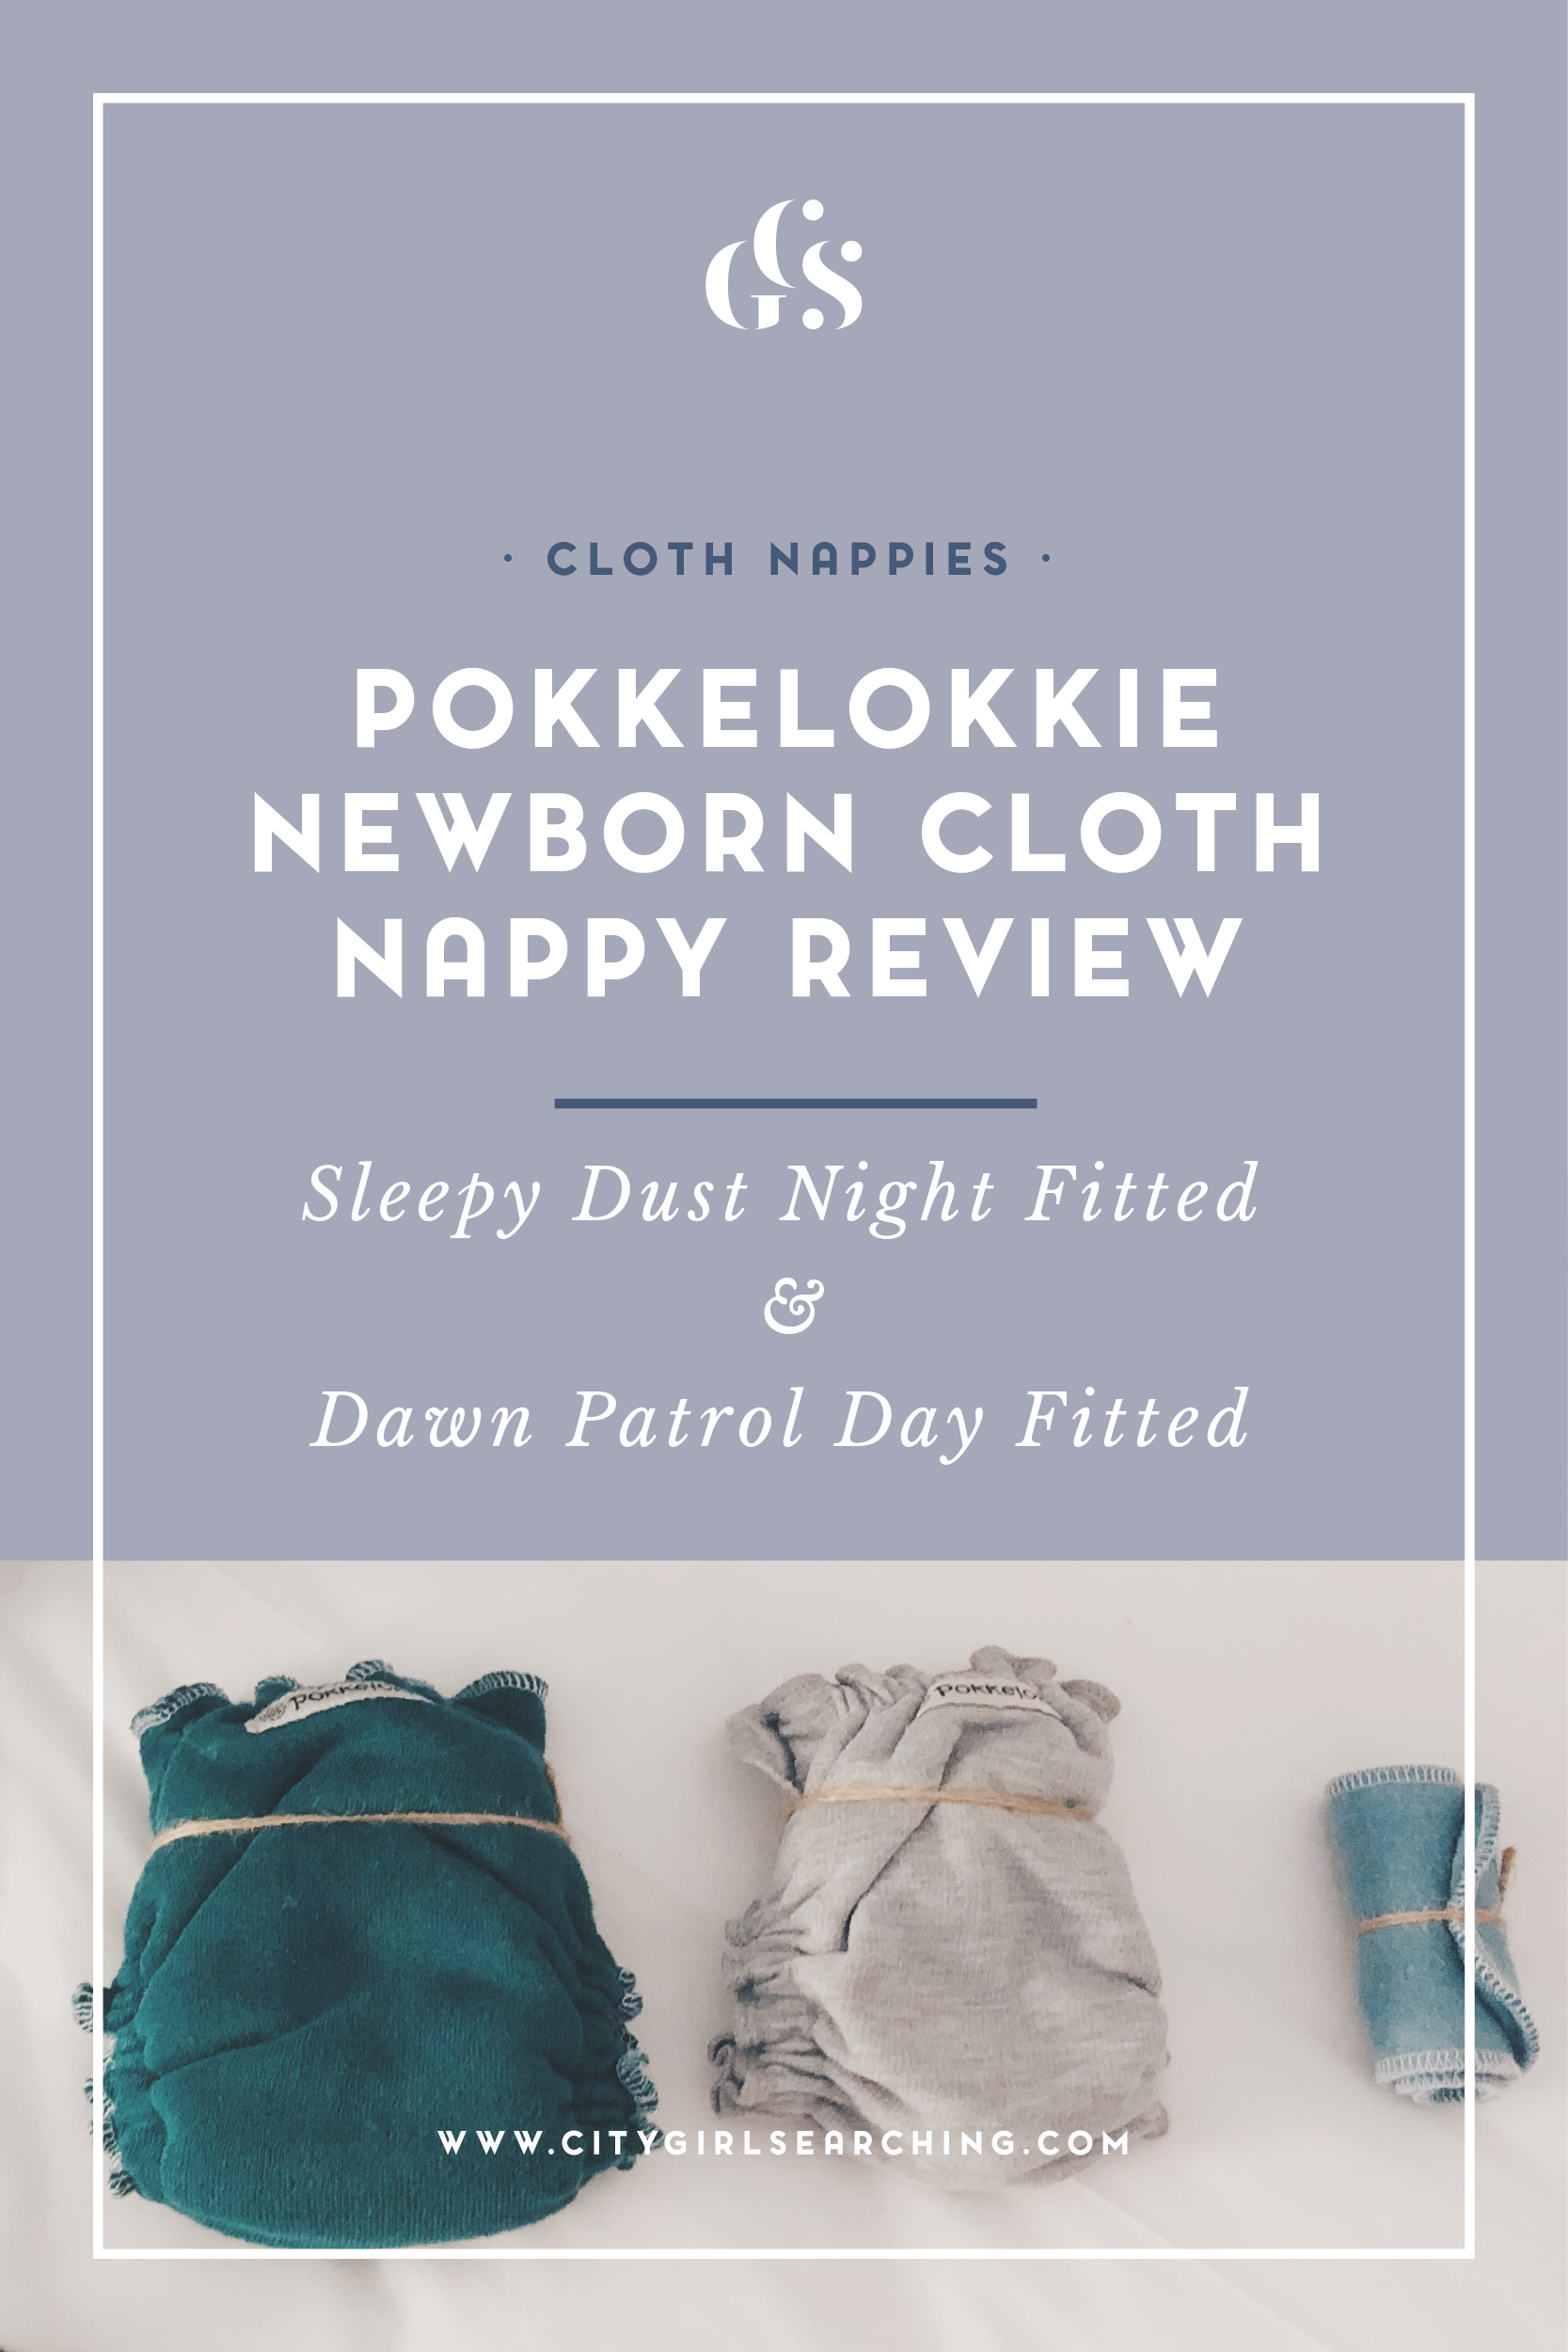 Pokkelokkie Newborn Cloth Nappy Review Sleepy Dust Fitted Dawn Patrol Fitted-01-01.png